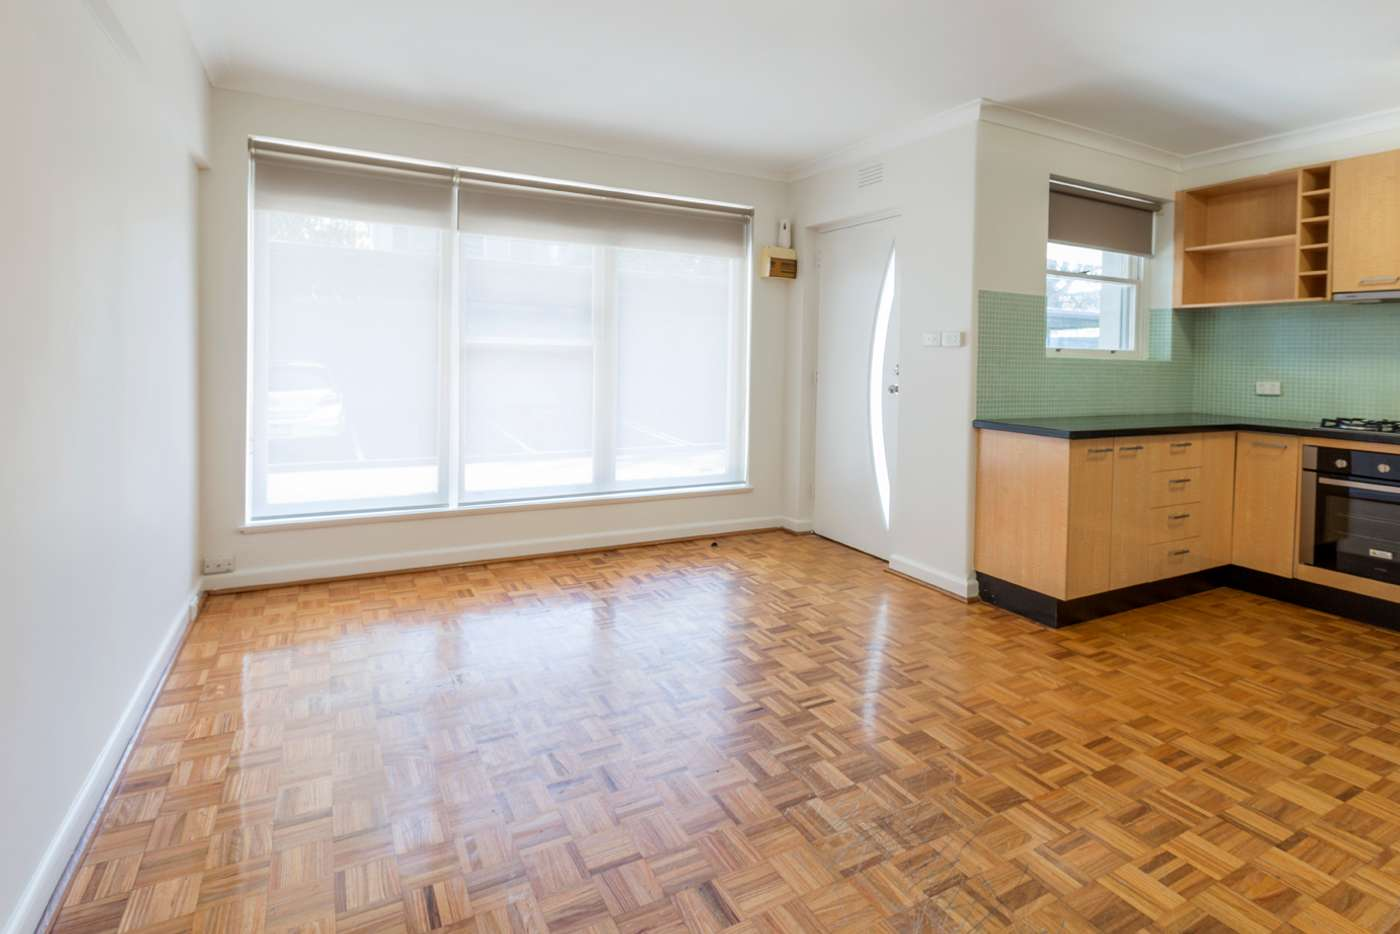 Main view of Homely apartment listing, 4/2 Yorston Court, Elsternwick VIC 3185